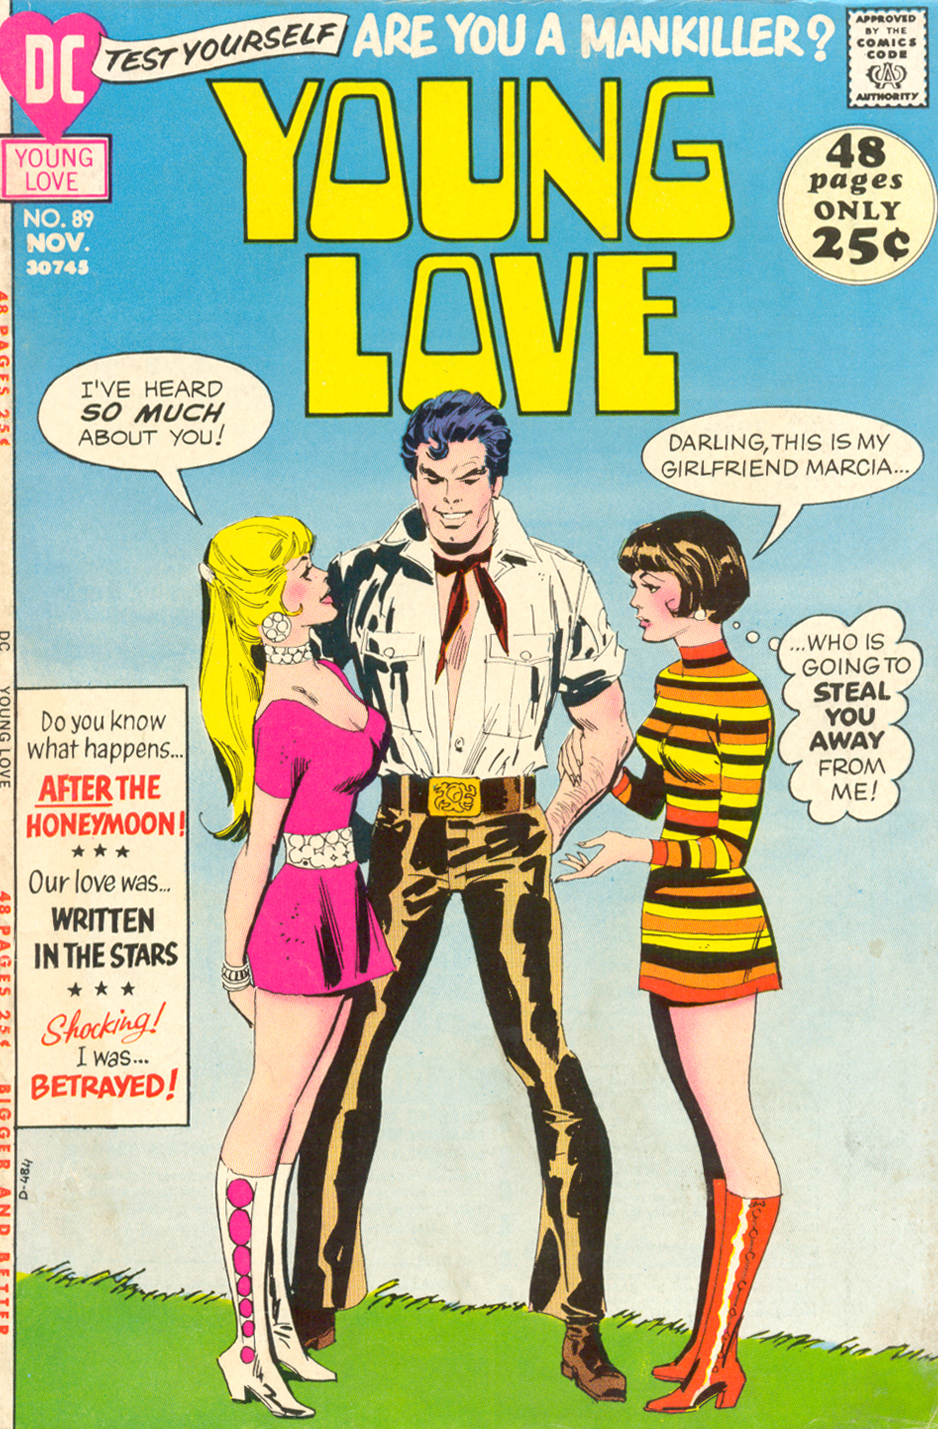 Young Love #89 (November 1971) Pencils: Don Heck, Inks: Dick Giordano